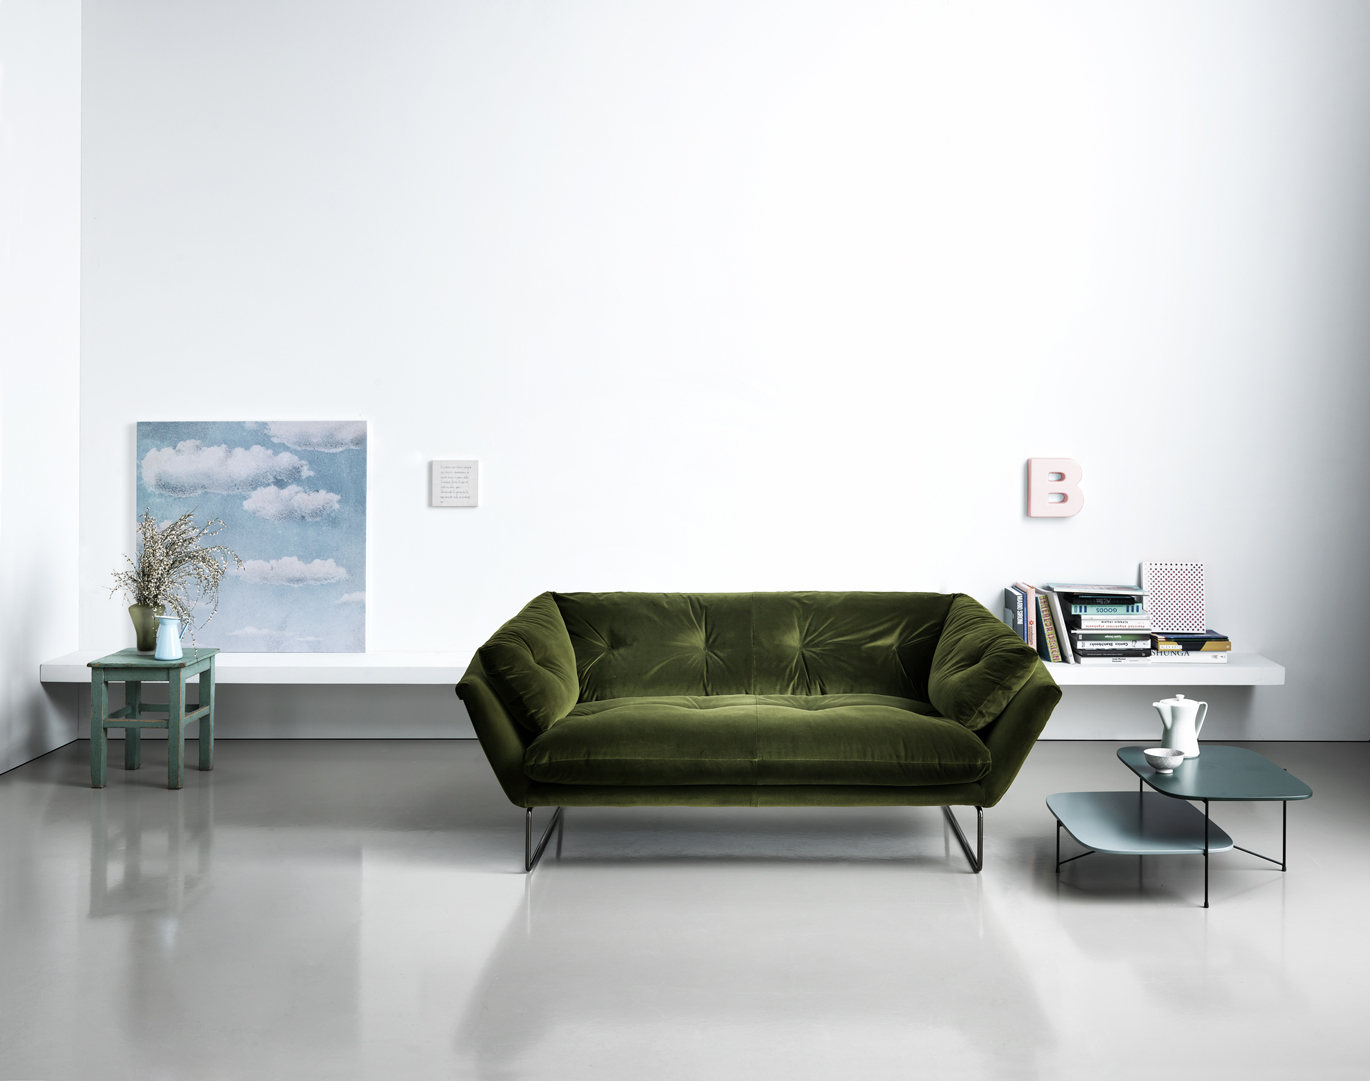 New York is a three-seater sofa with an extra soft frame, hexagonal-shaped silhouette and lightweight frame. The result of this concept is a sofa with an urban aesthetic with clear references to...